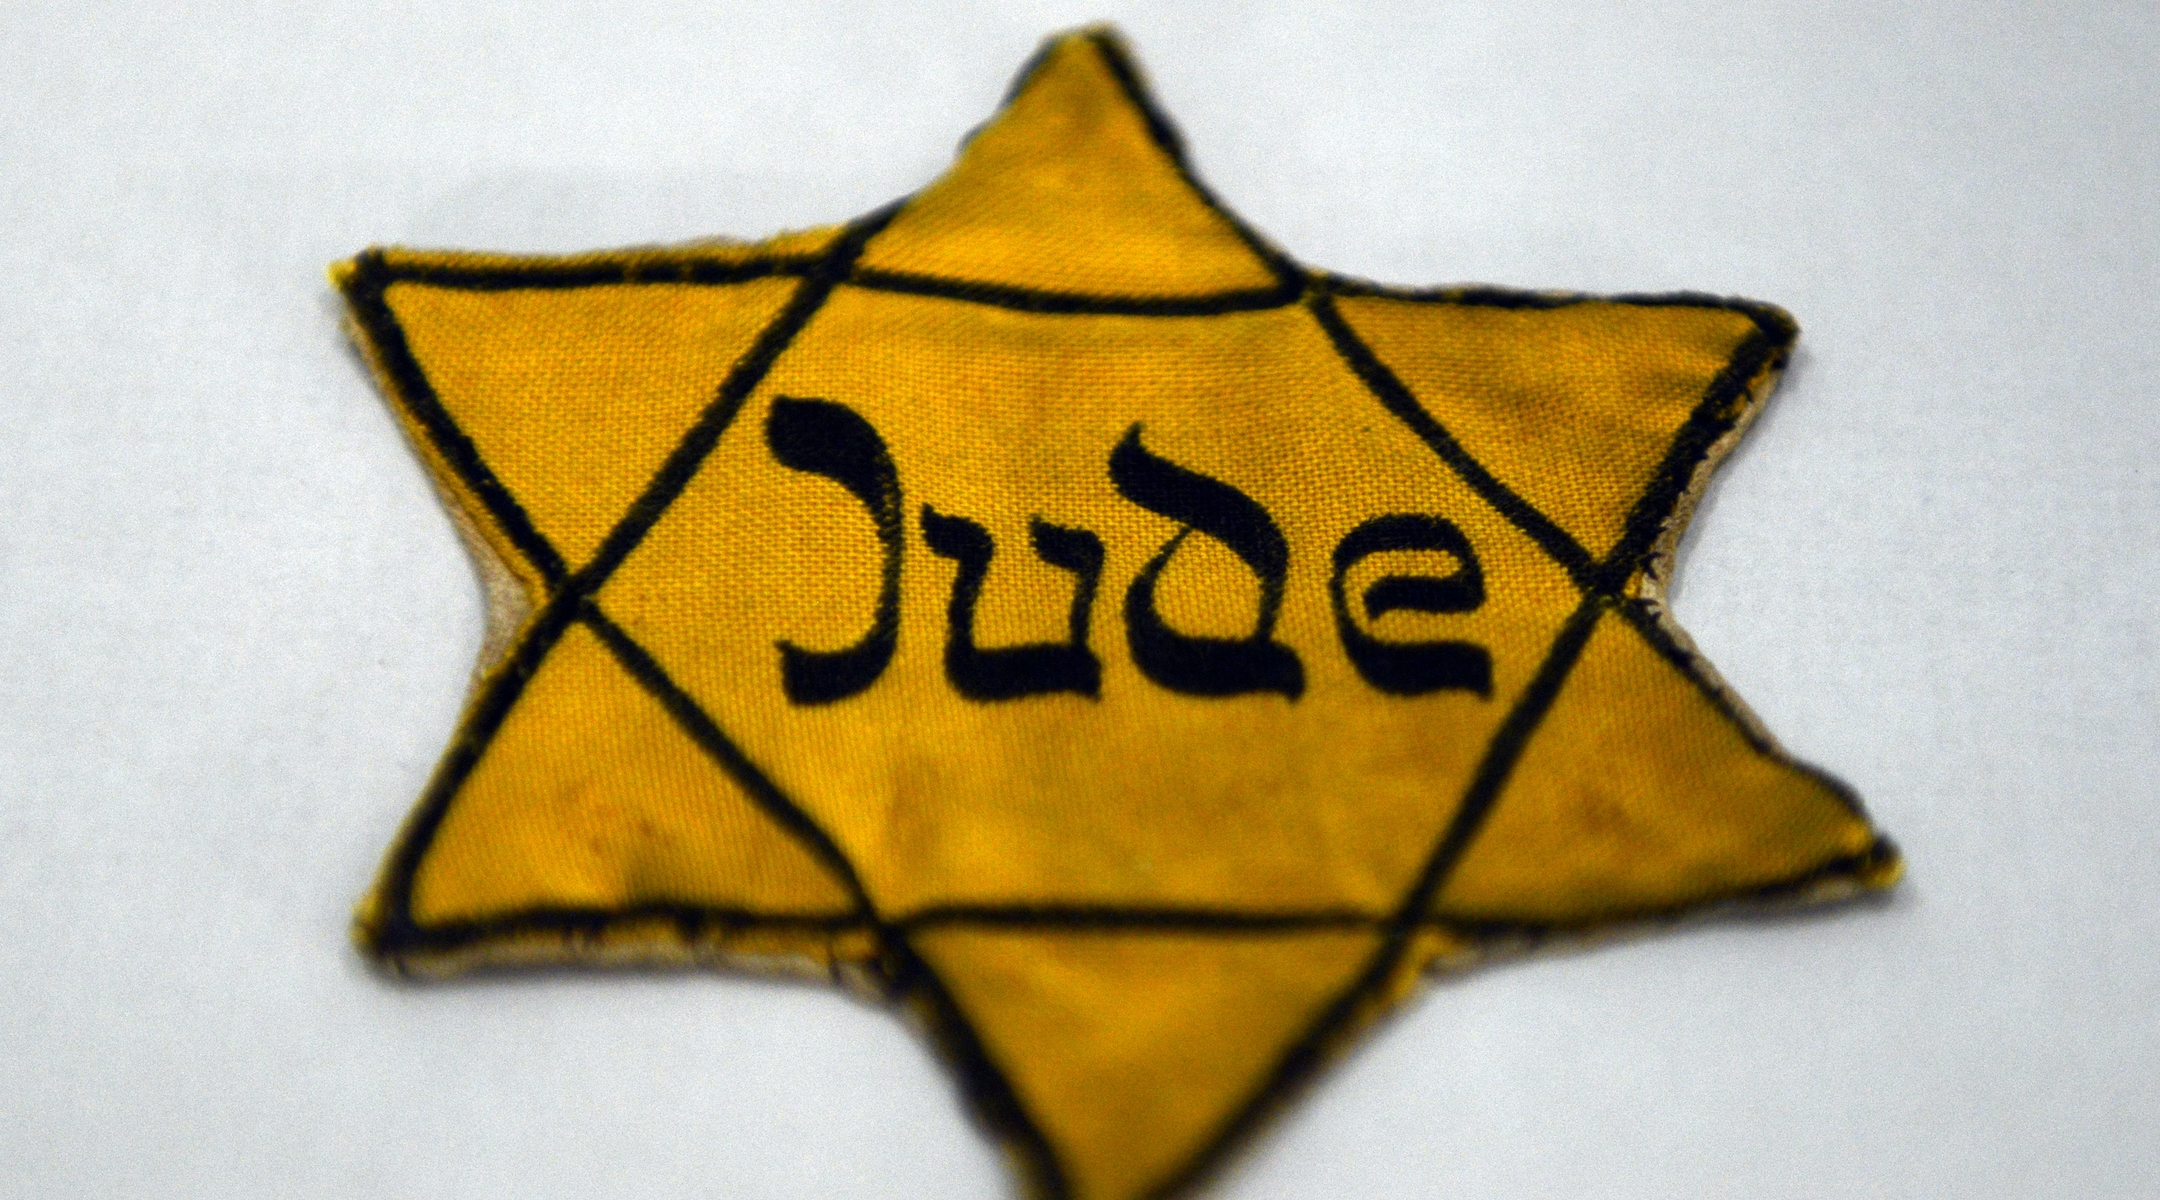 Dutch-Jewish resistance fighter whose factory was used to make yellow stars dies at 98